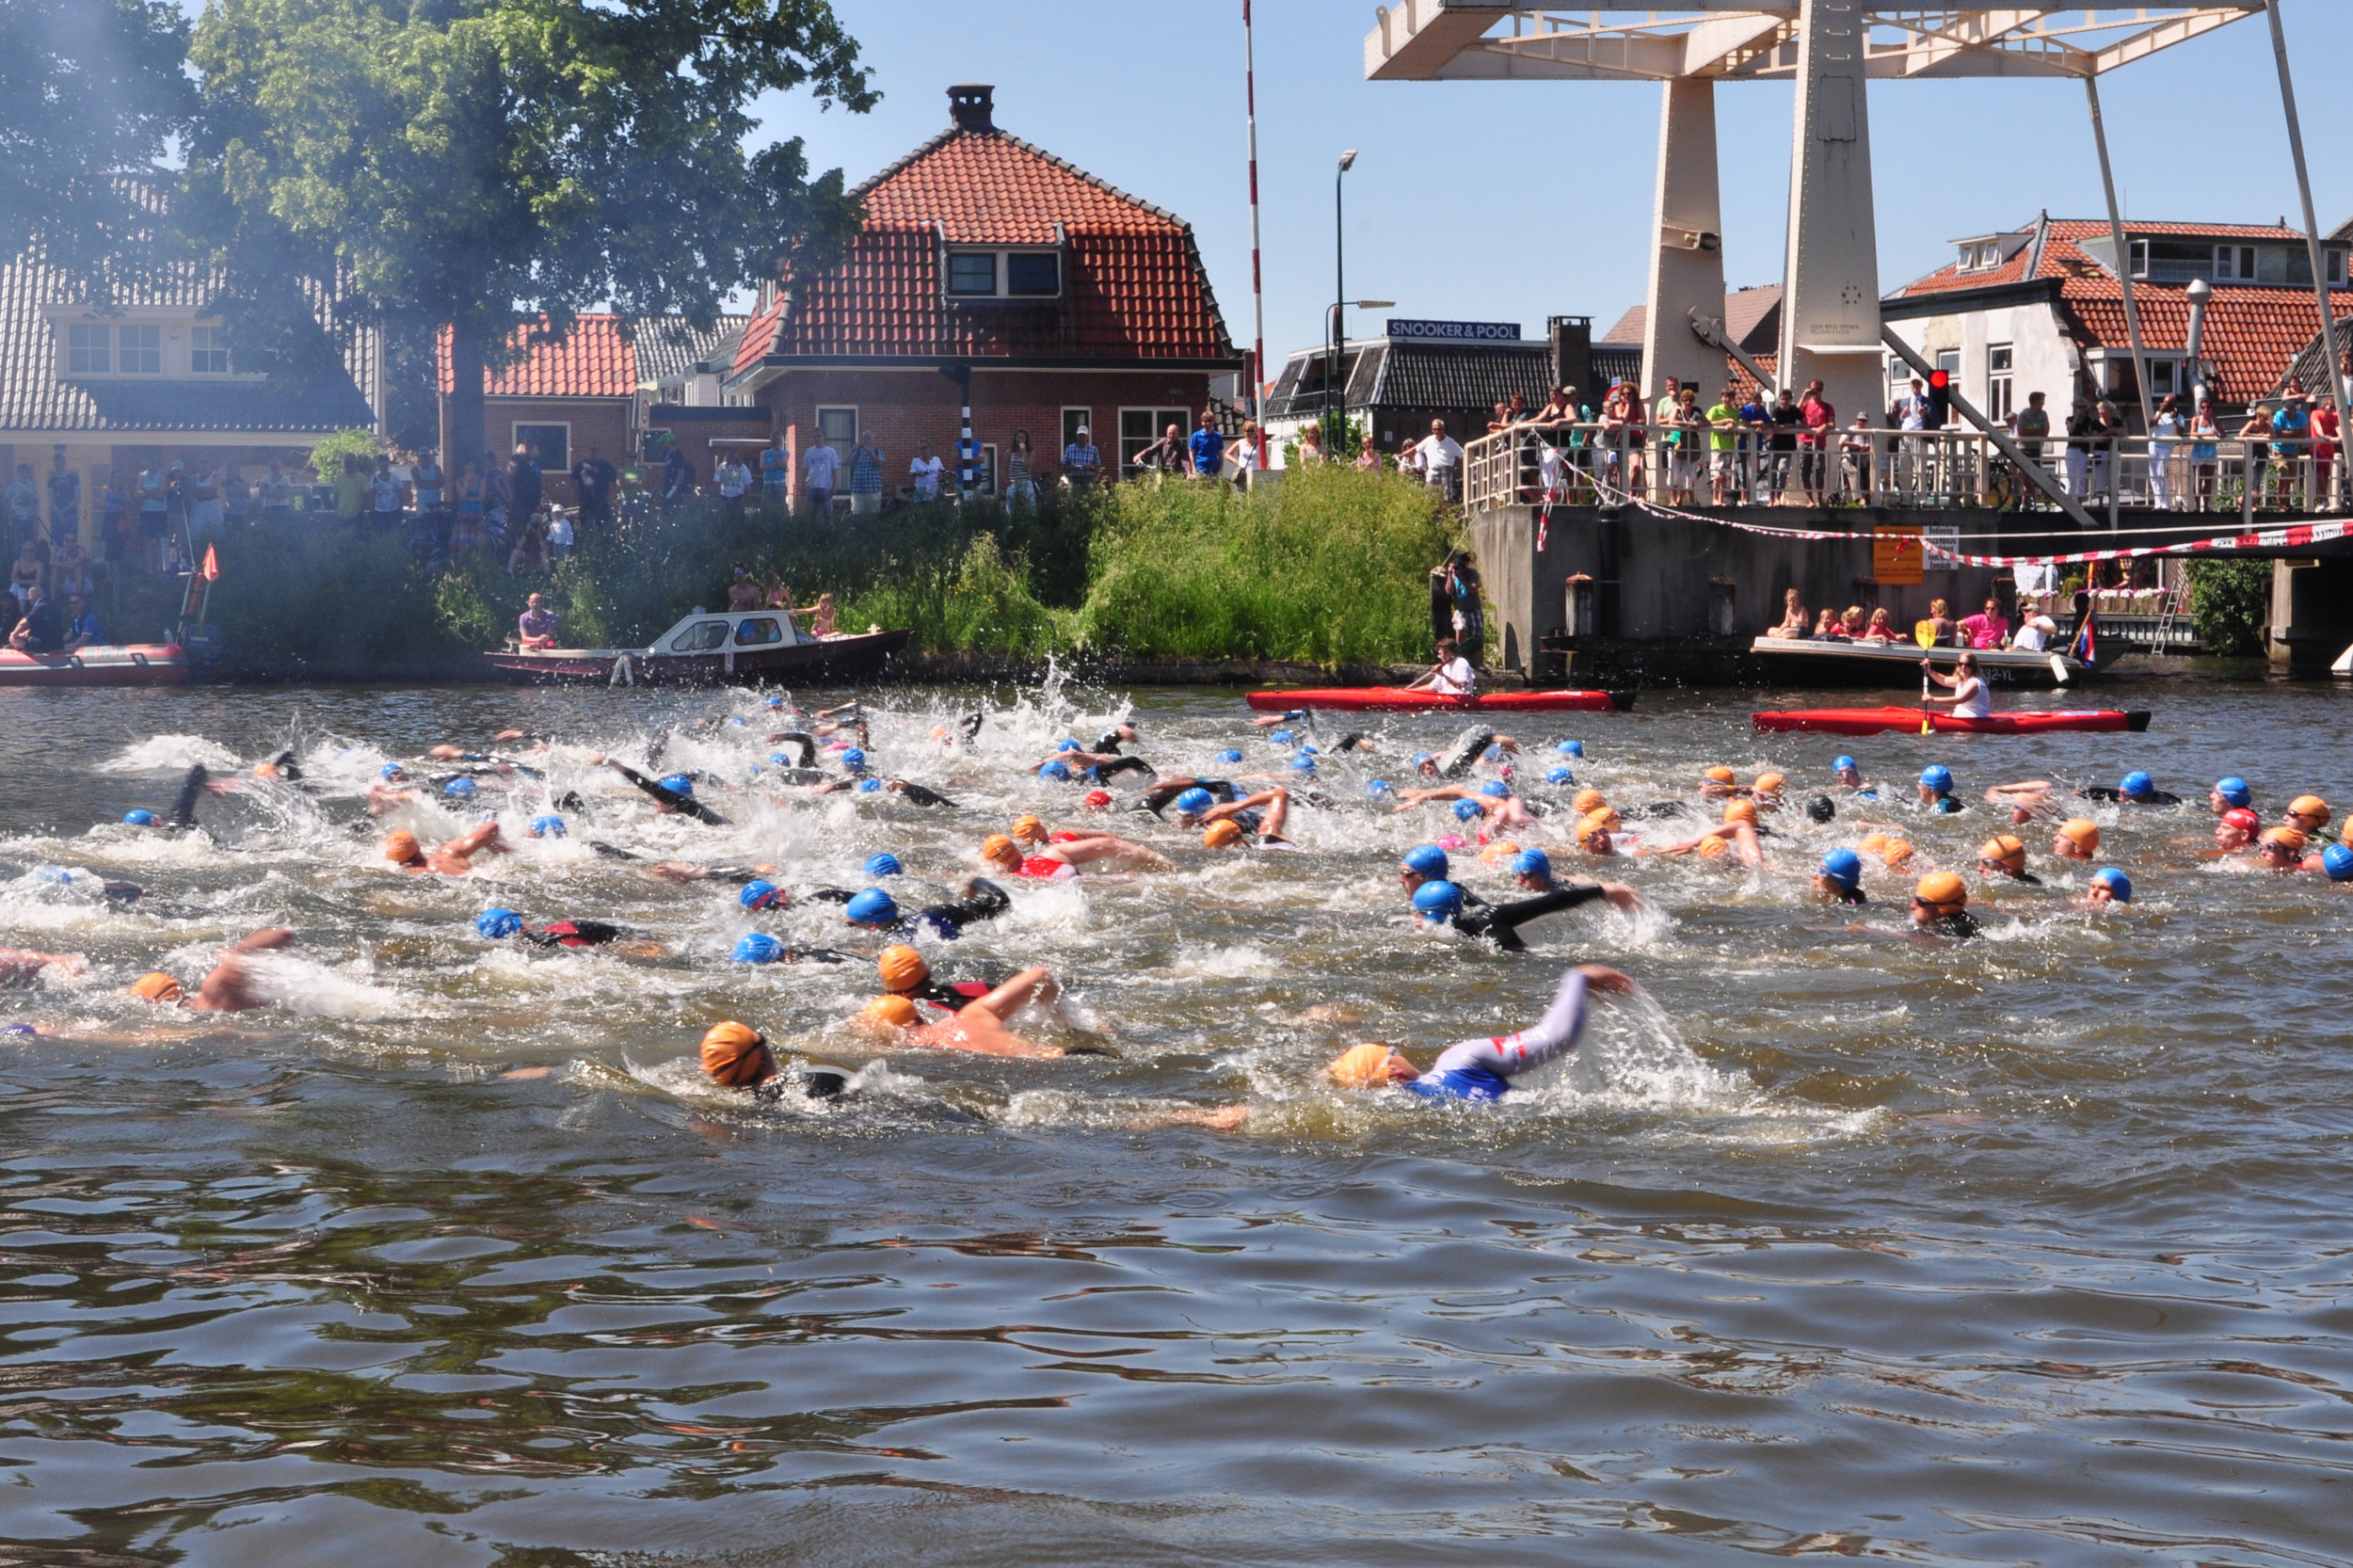 Triathlon open water start - this is where the mental game starts. Are you captured by the cold? Panicky when you see arms and legs everywhere around you? Do you lose your orientation? How do you cope under pressure?